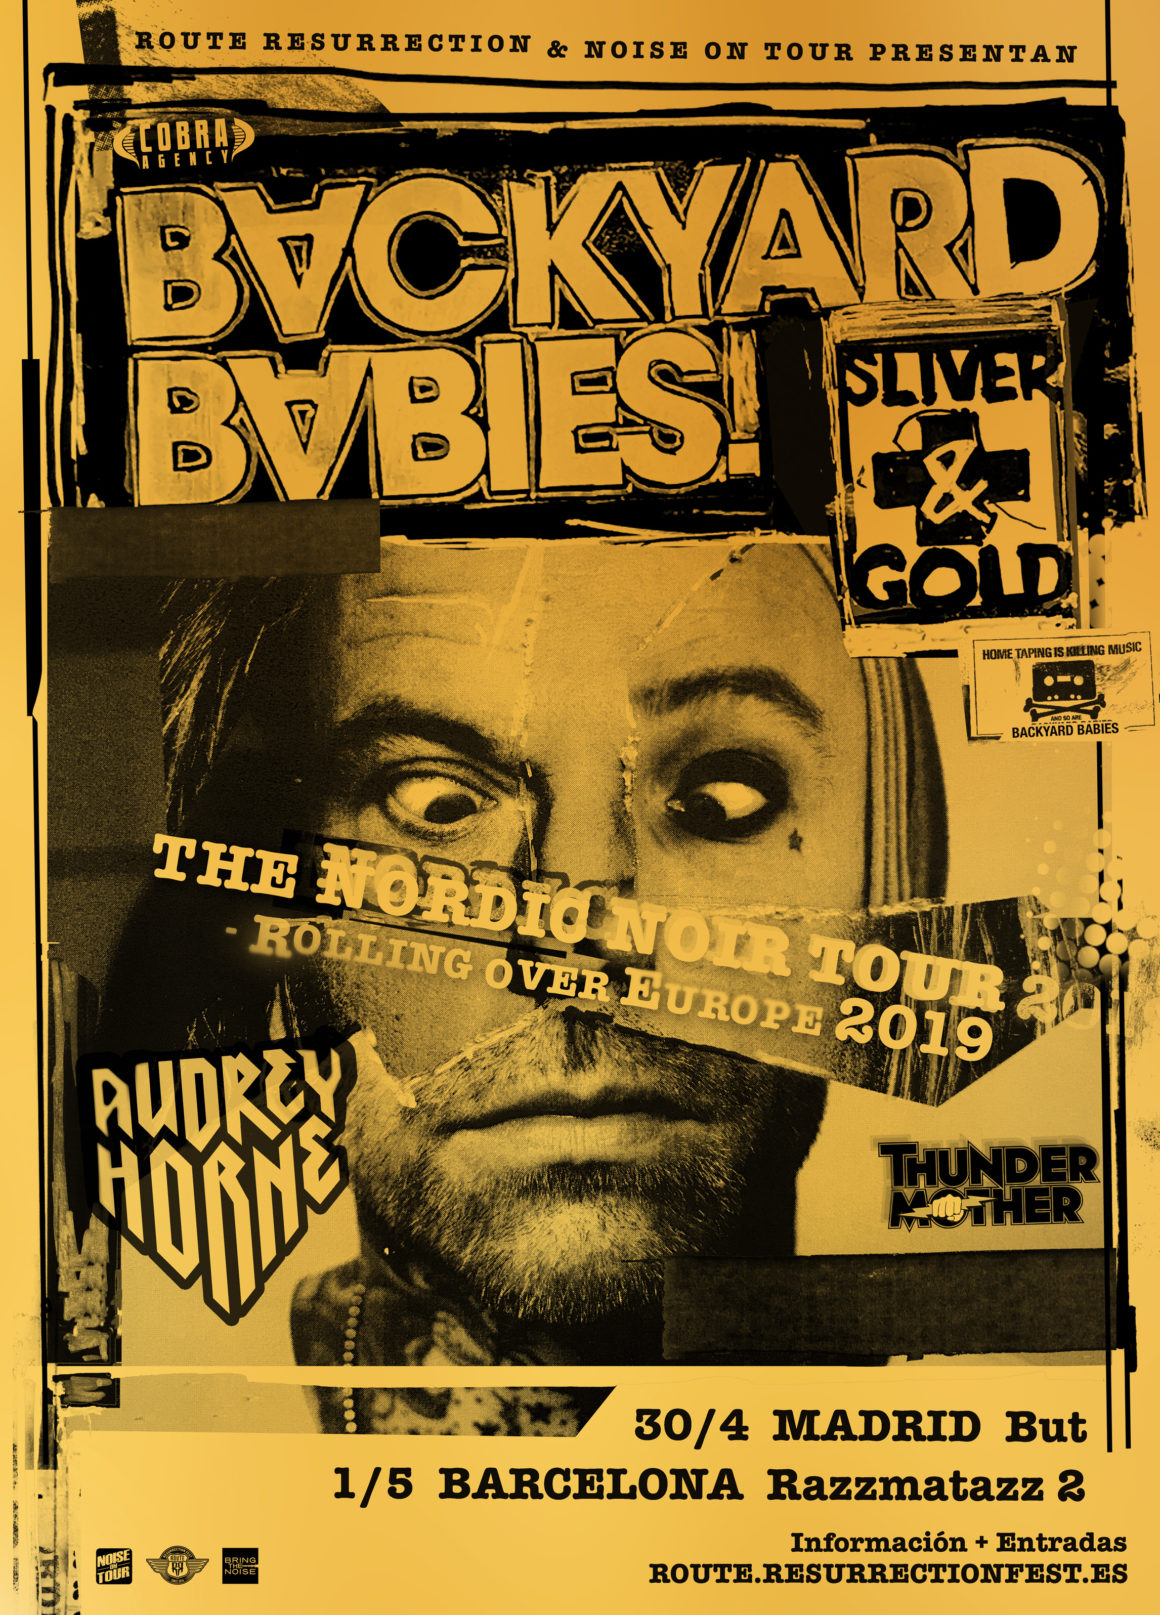 Nueva gira Route Resurrection: Backyard Babies